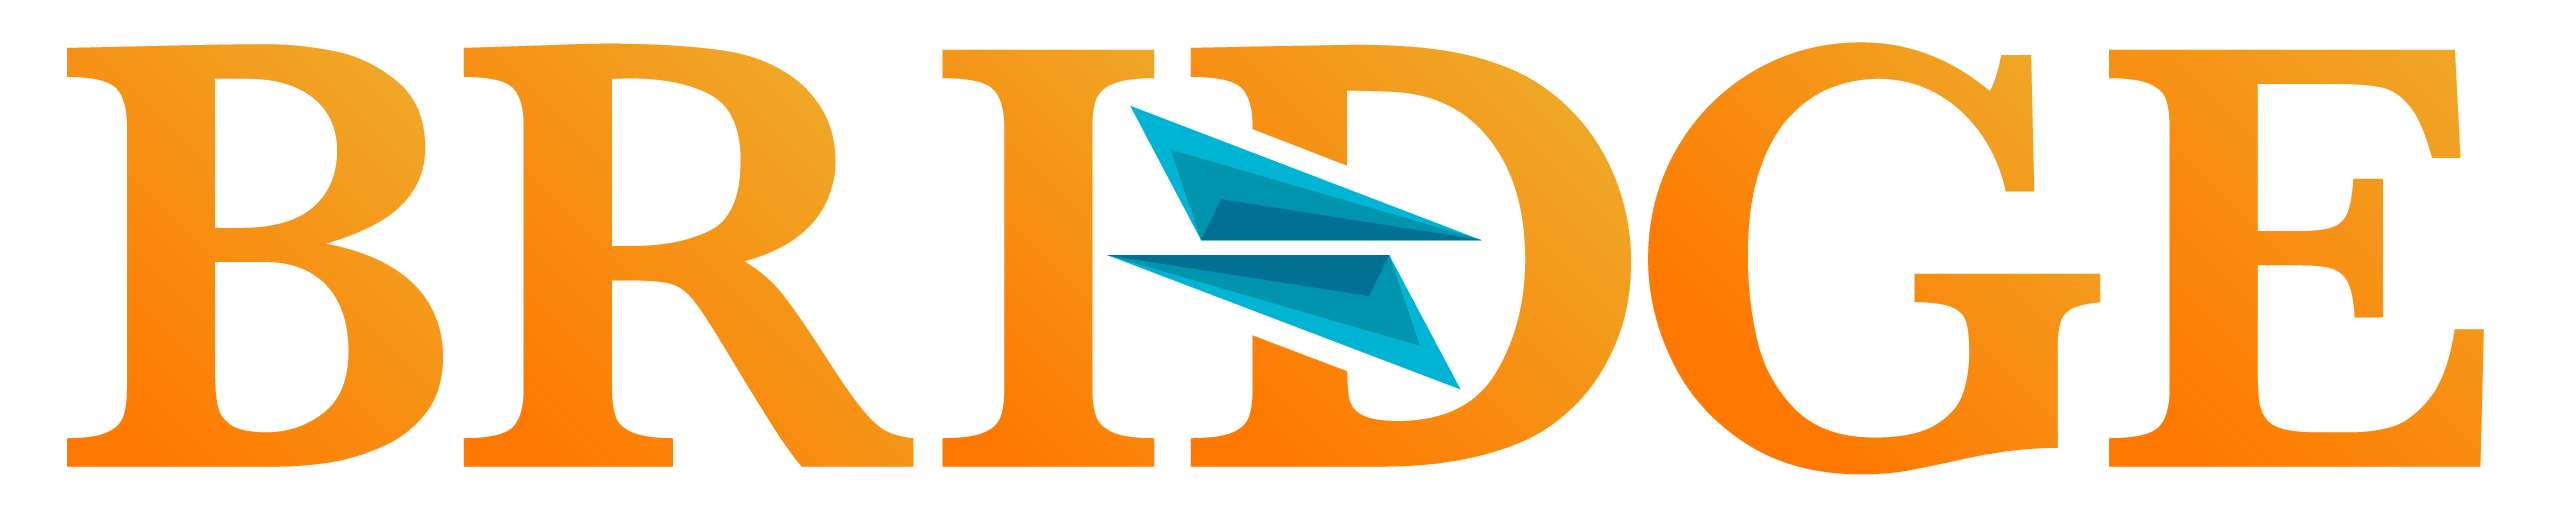 BRIDGE logo_3D